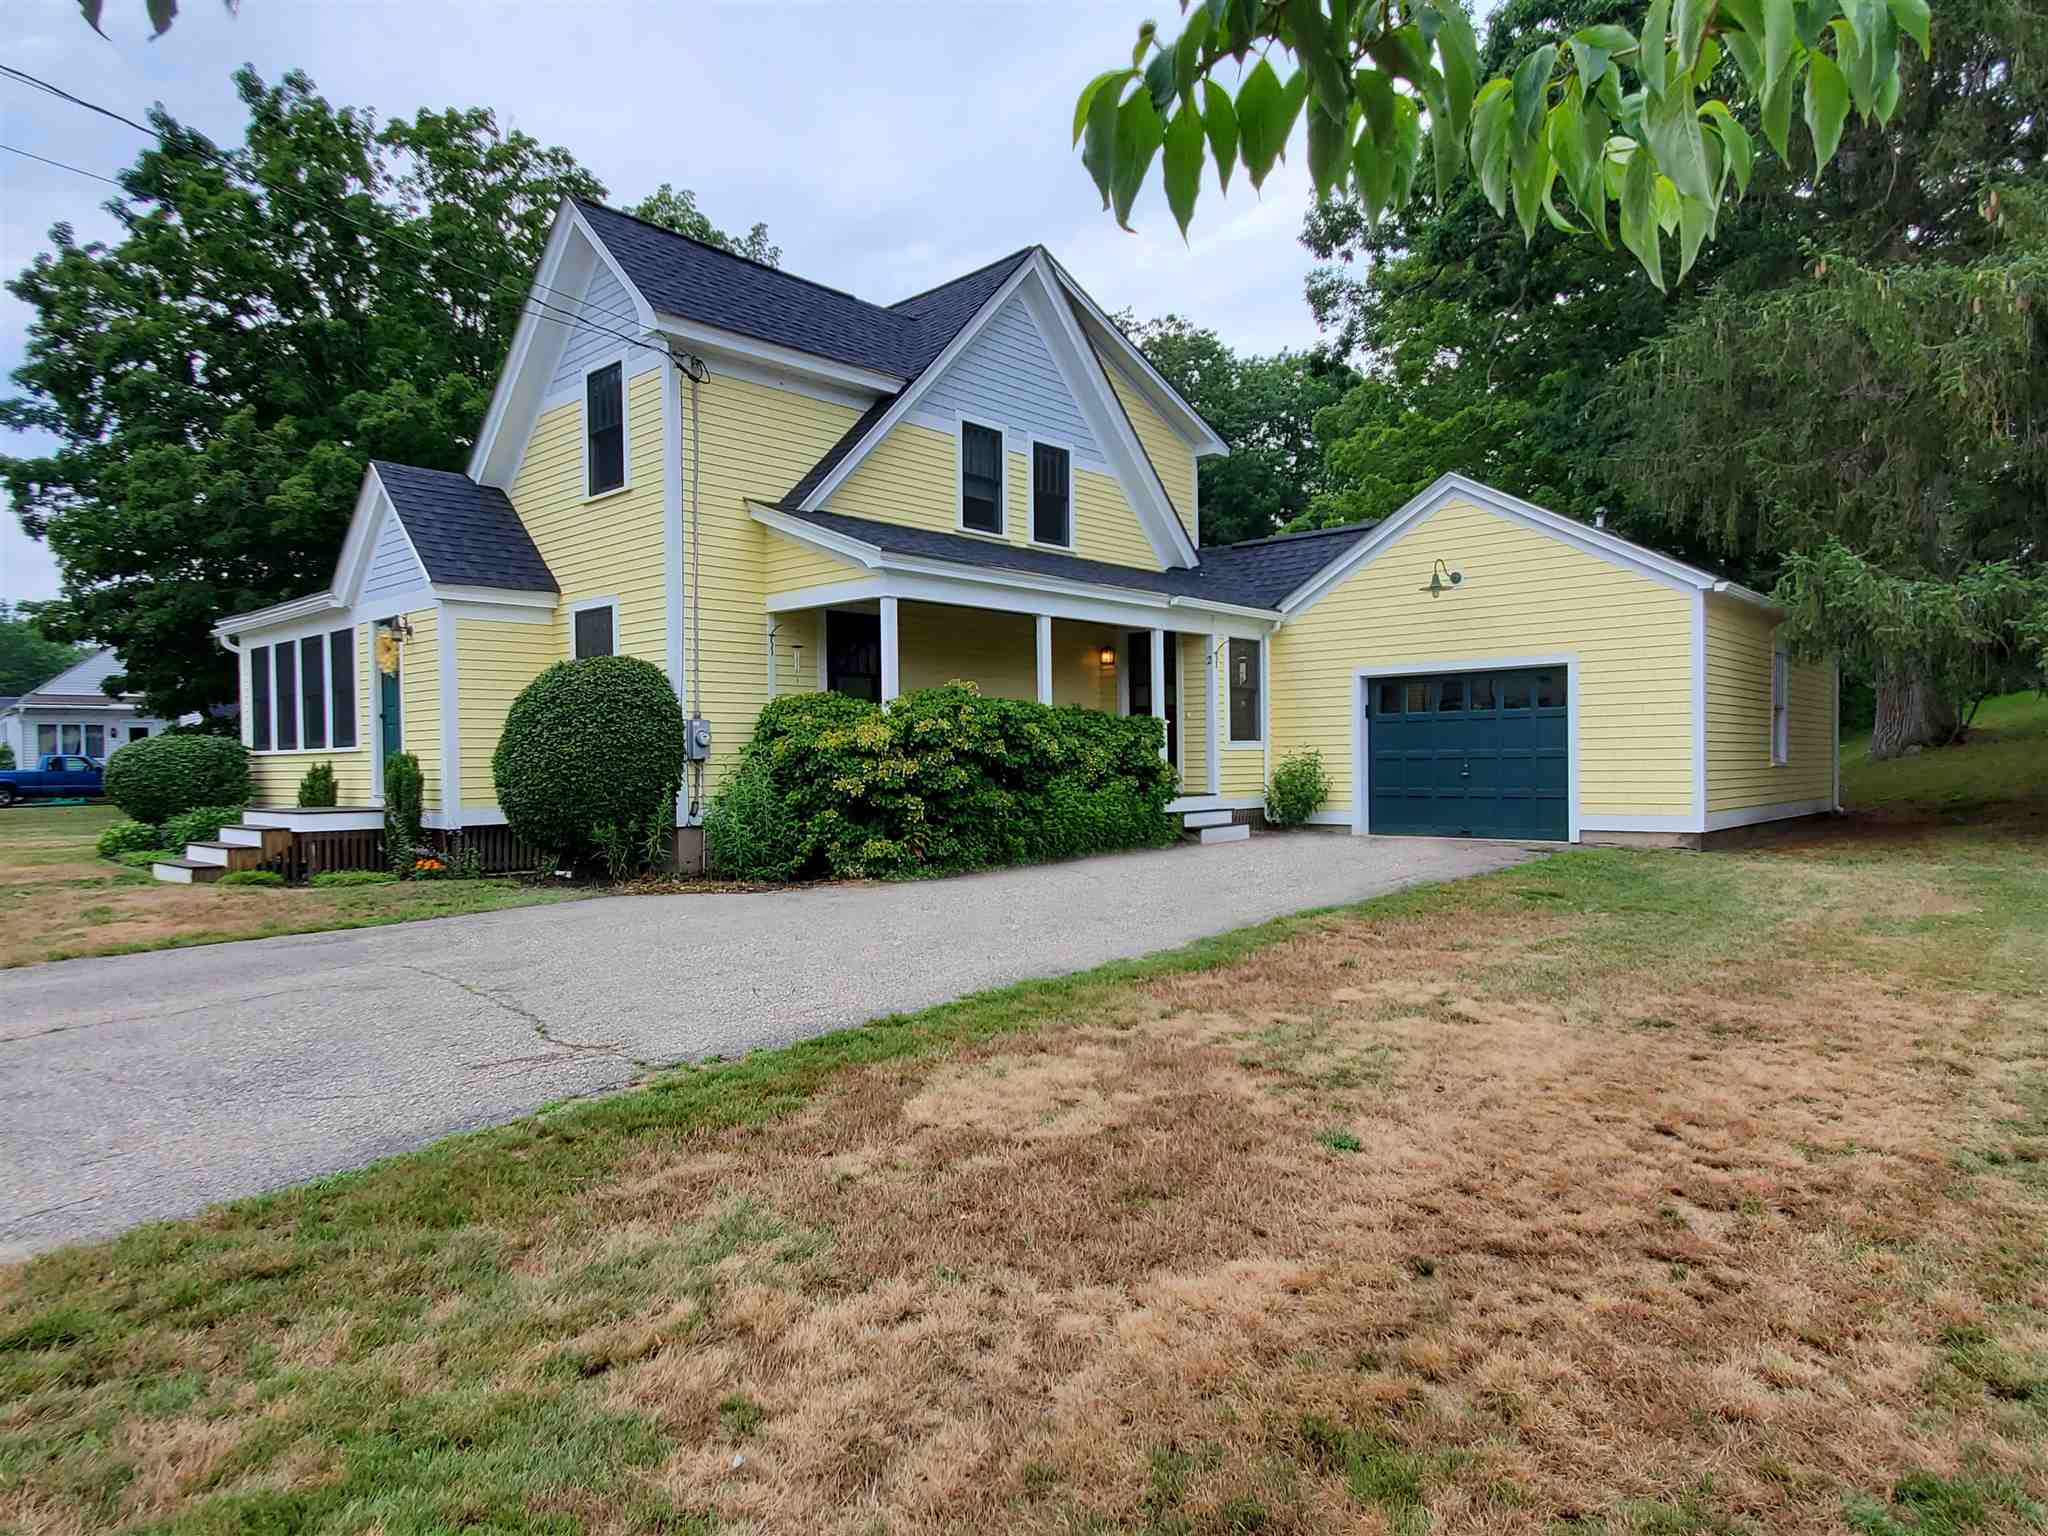 Photo of 2 Packers Falls Road Newmarket NH 03857